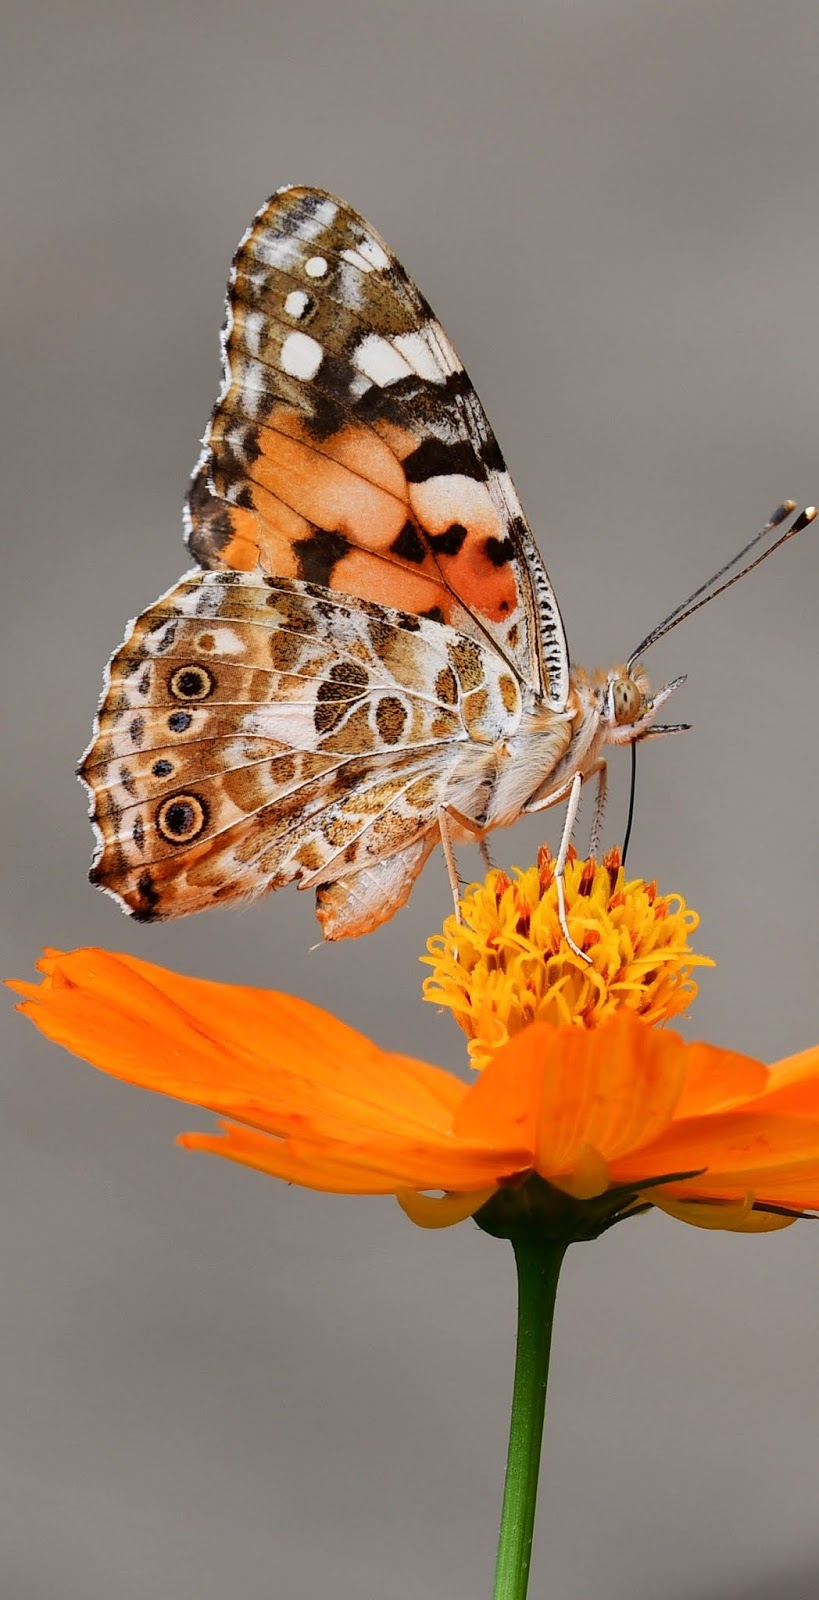 A butterfly on an orange flower.